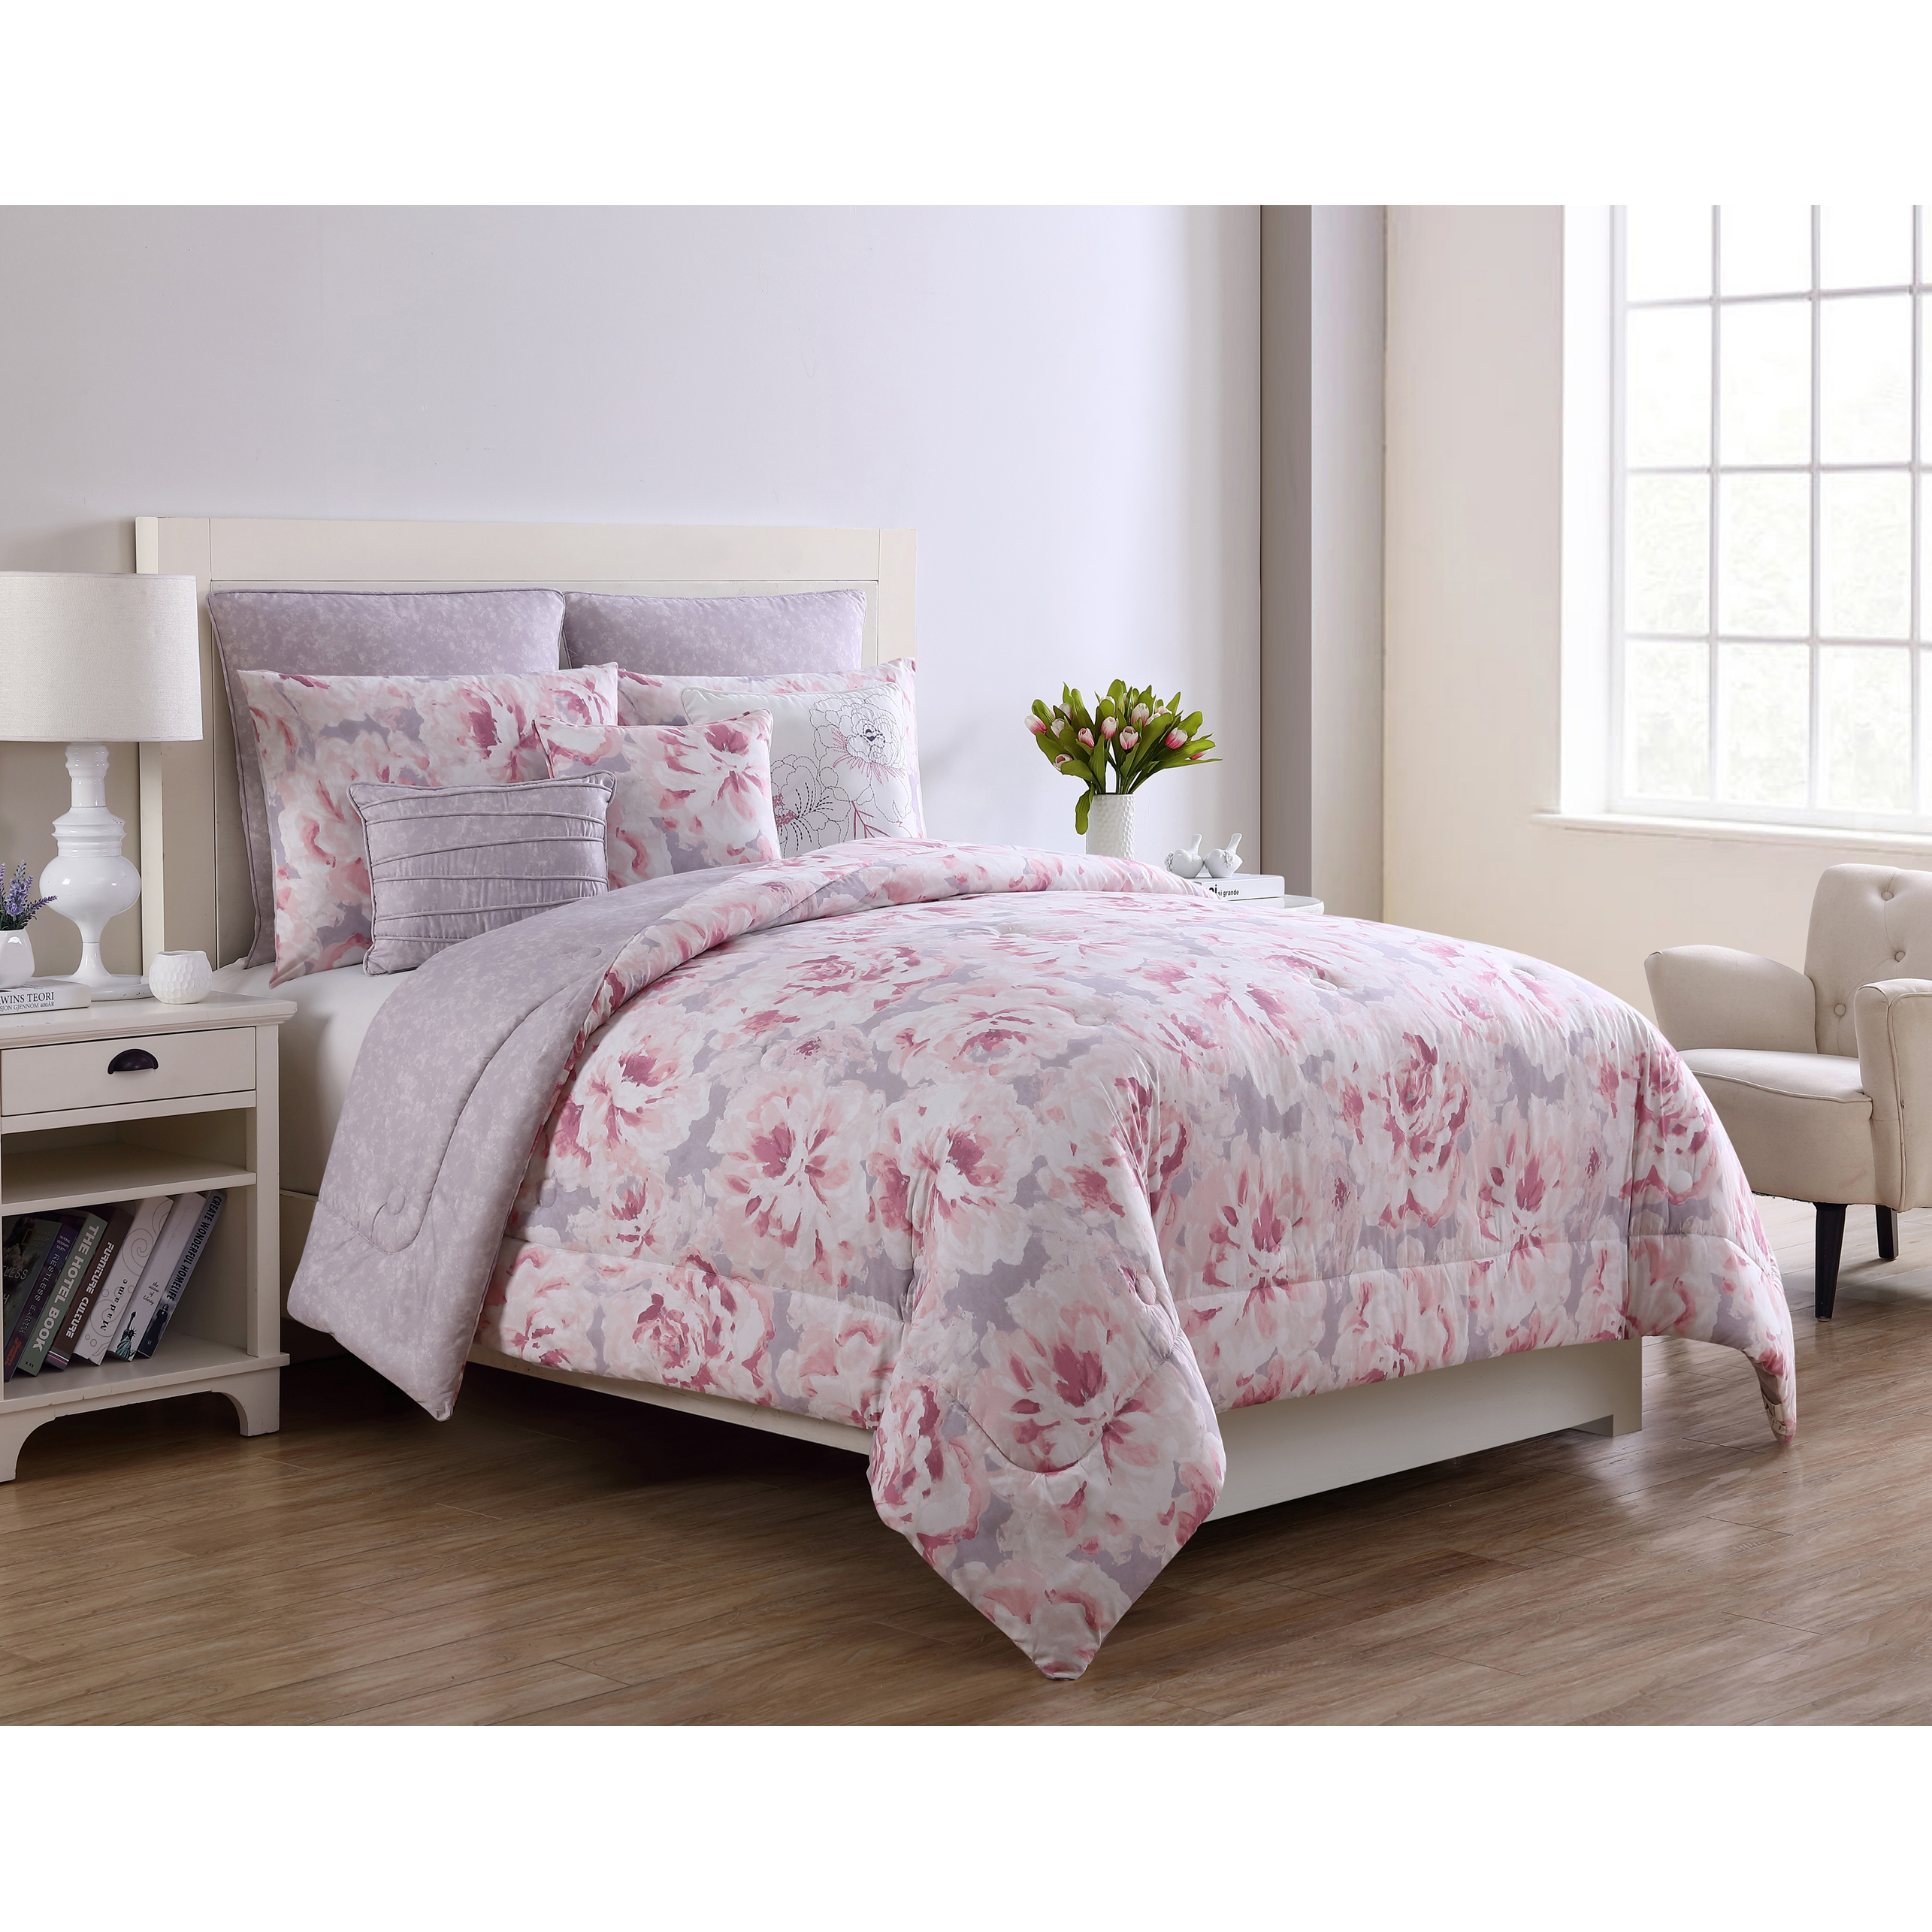 Mainstays Grey/Pink Floral Jill 8-Piece Bedding Comforter Set with Euro Shams and Decorative Pillows